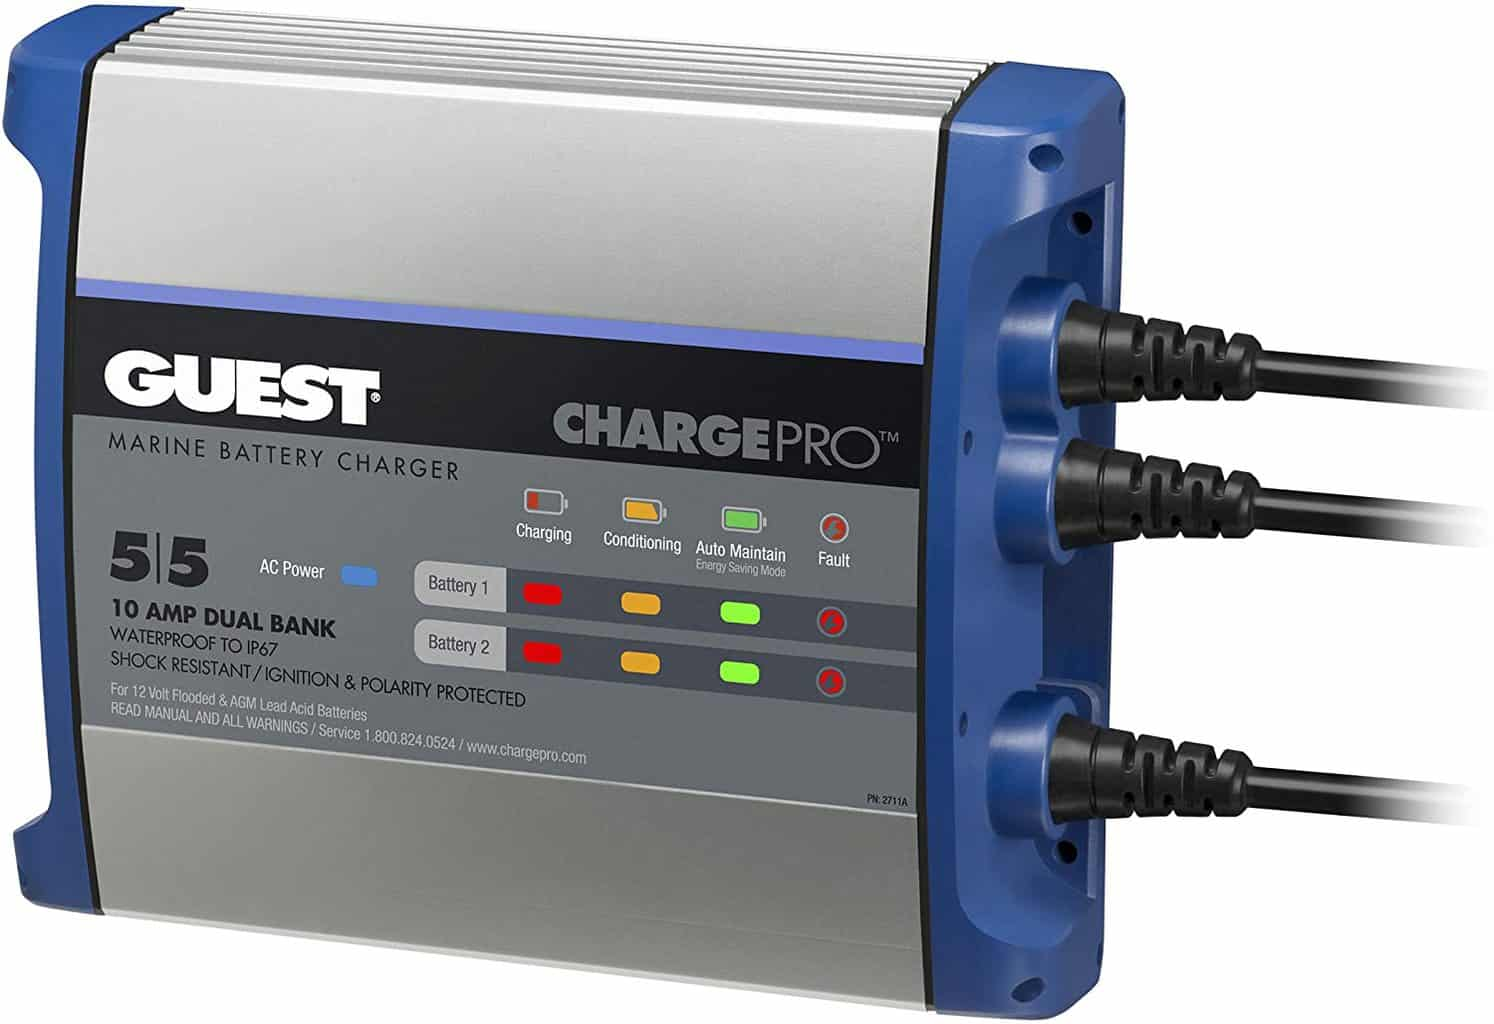 5. ChargePro by Guest